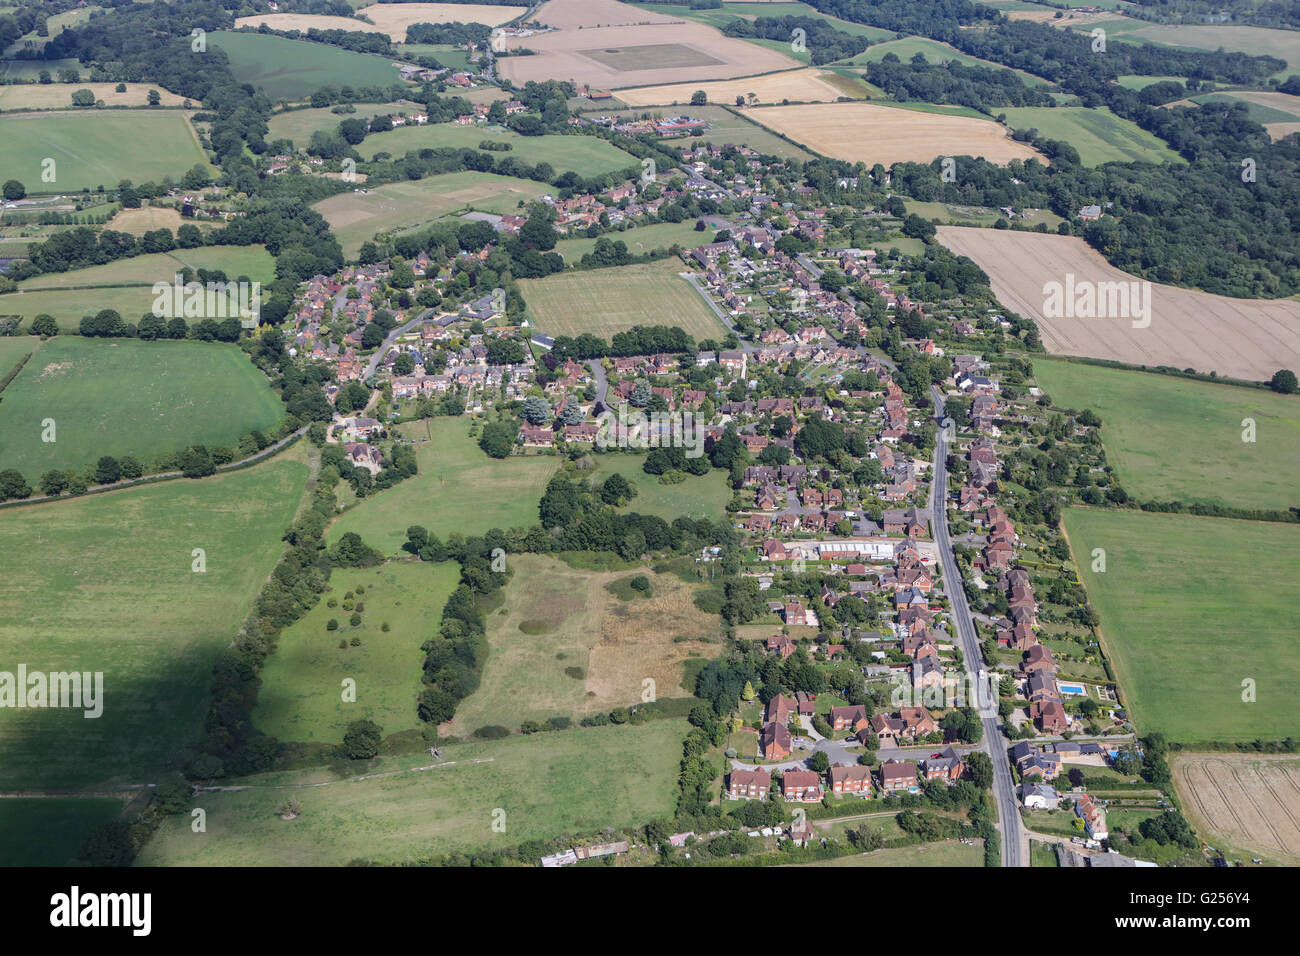 An aerial view of the village of Bradfield Southend, Berkshire - Stock Image